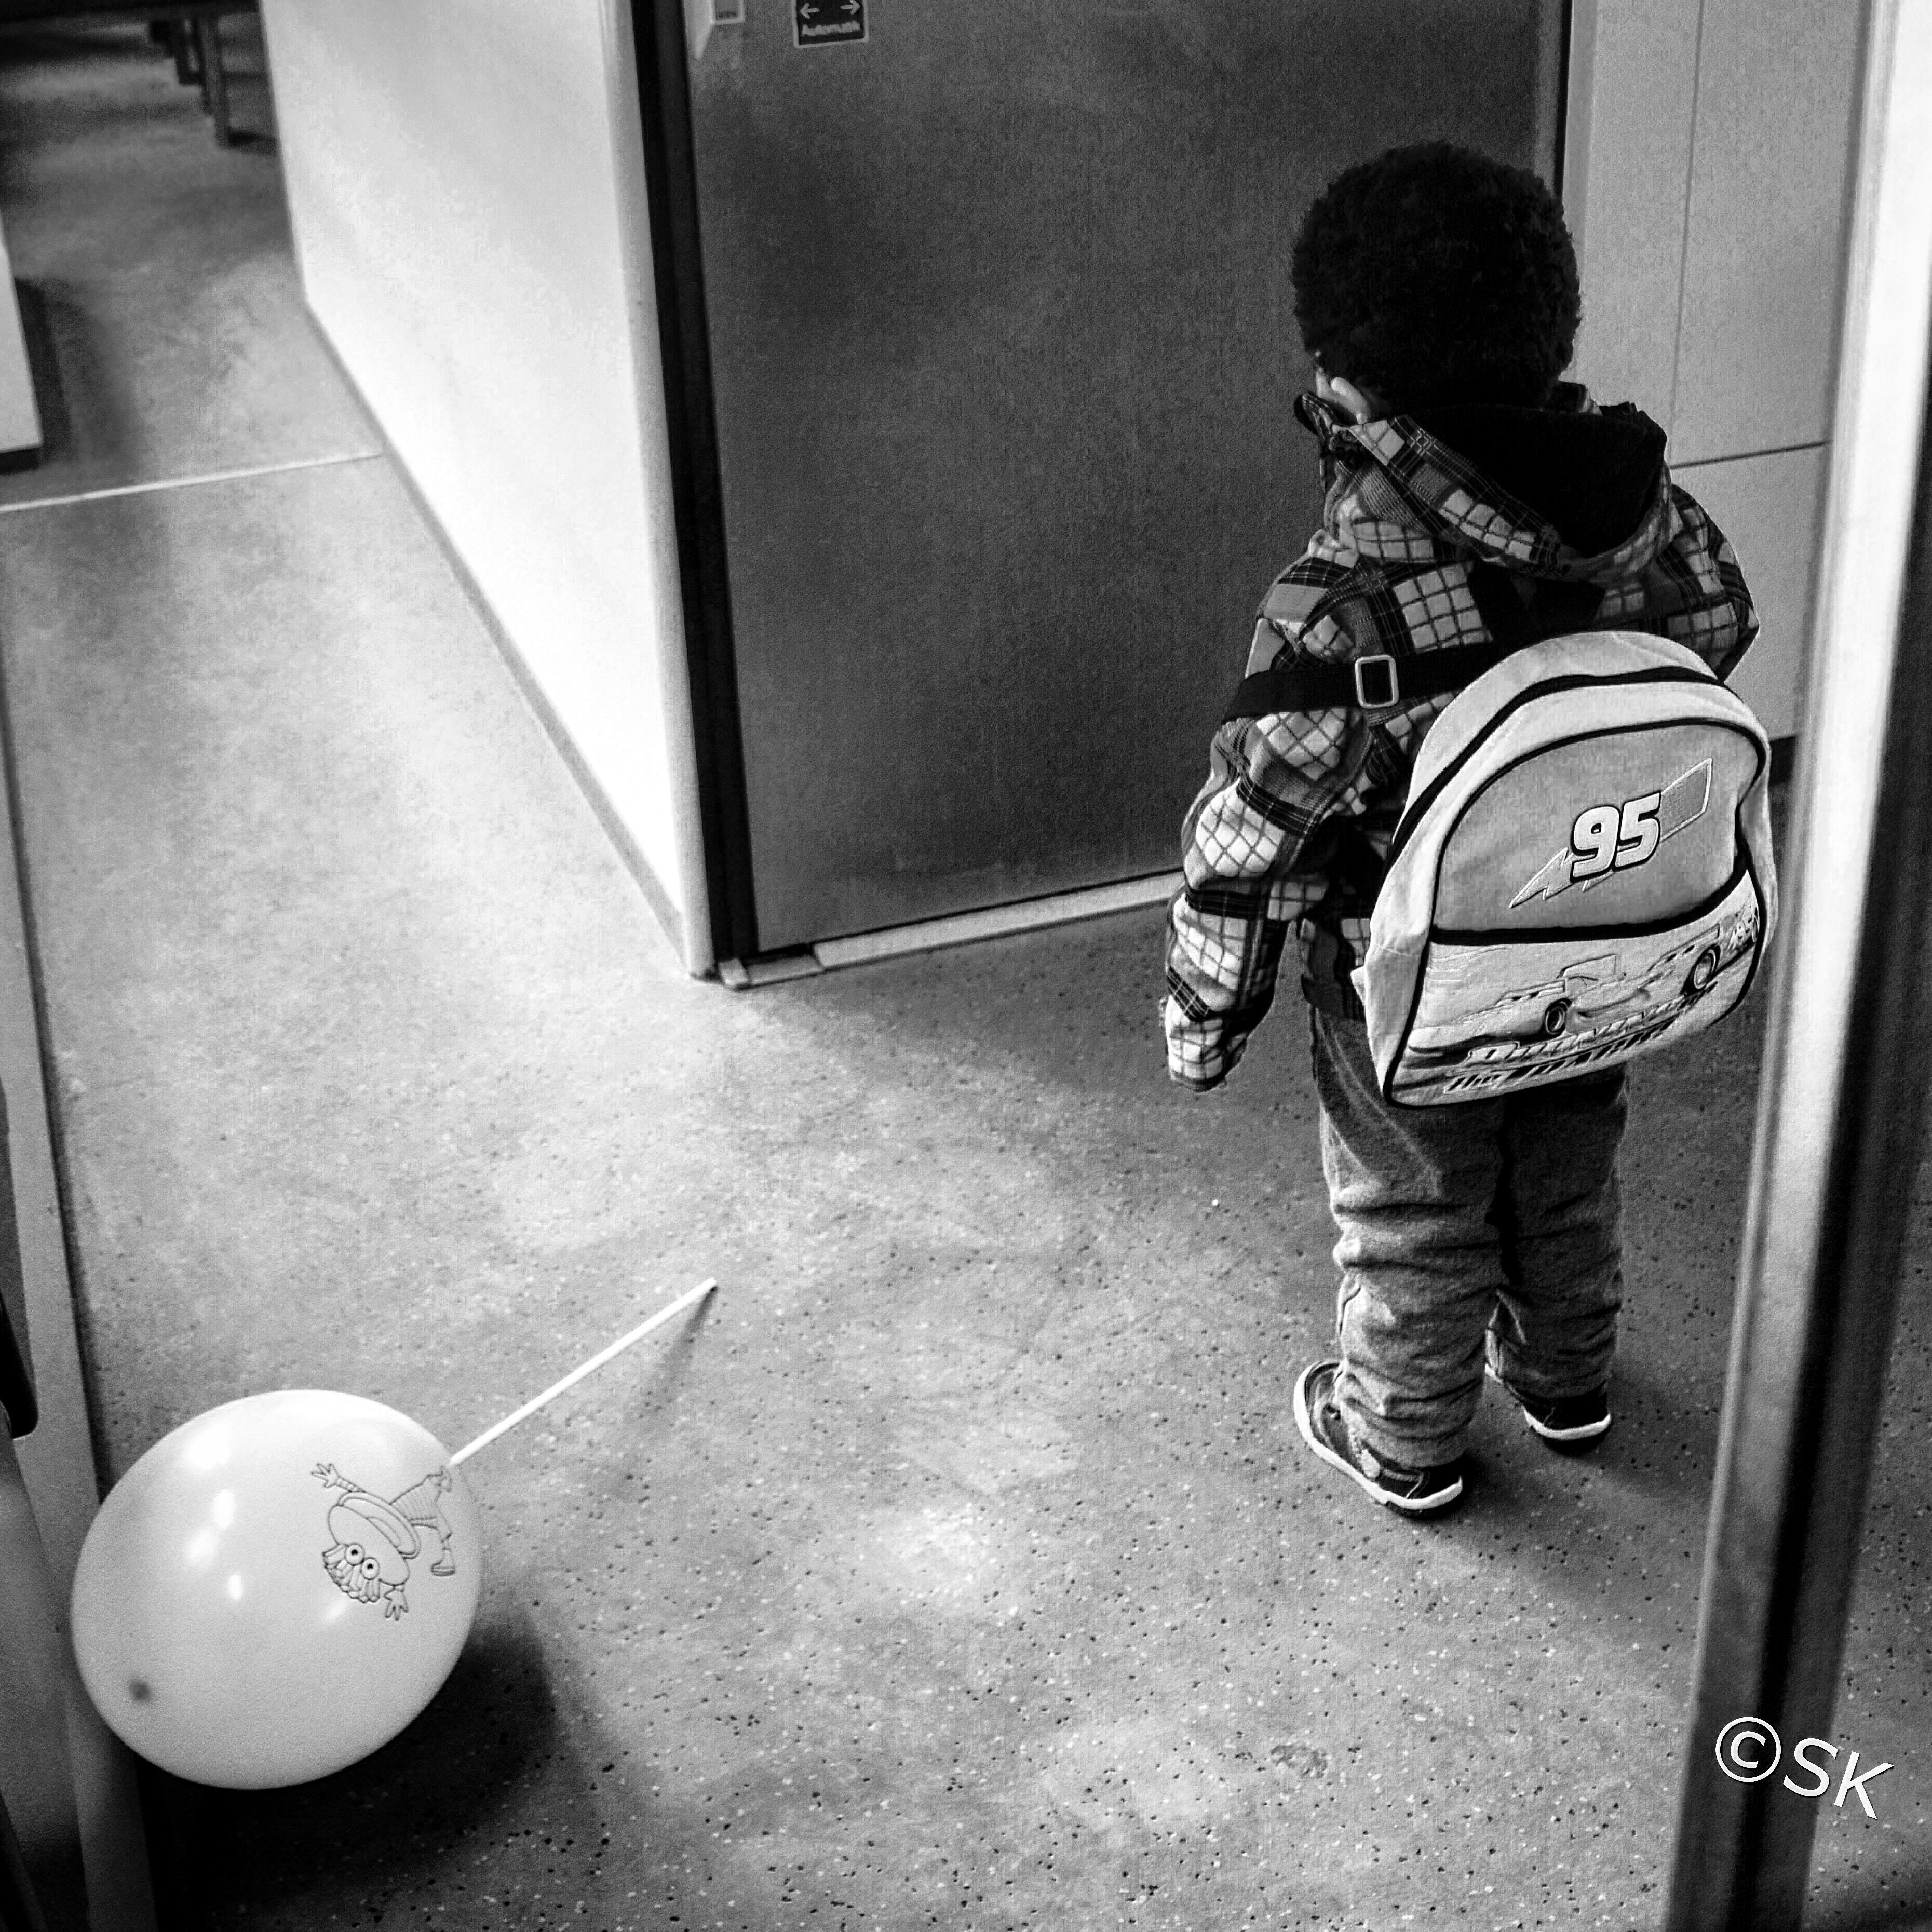 The boy and the balloon